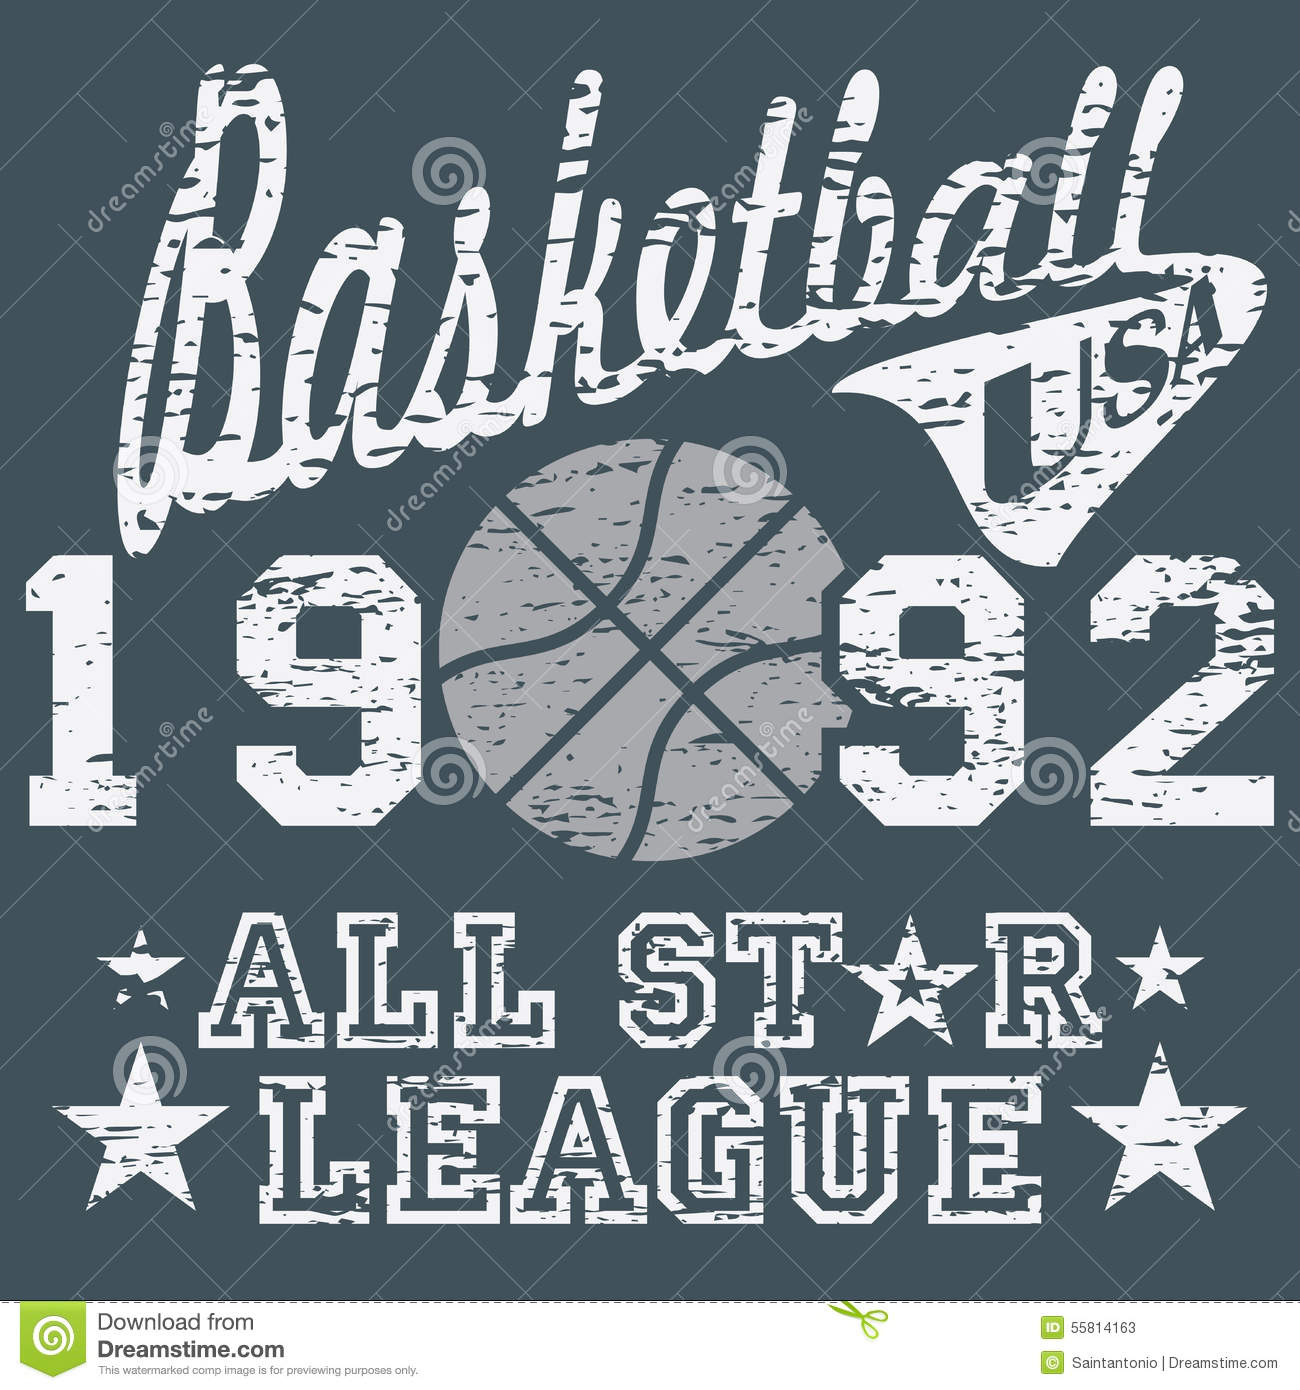 Design t shirt label - Basketball All Star League Artwork Typography Poster T Shirt Printing Design Vector